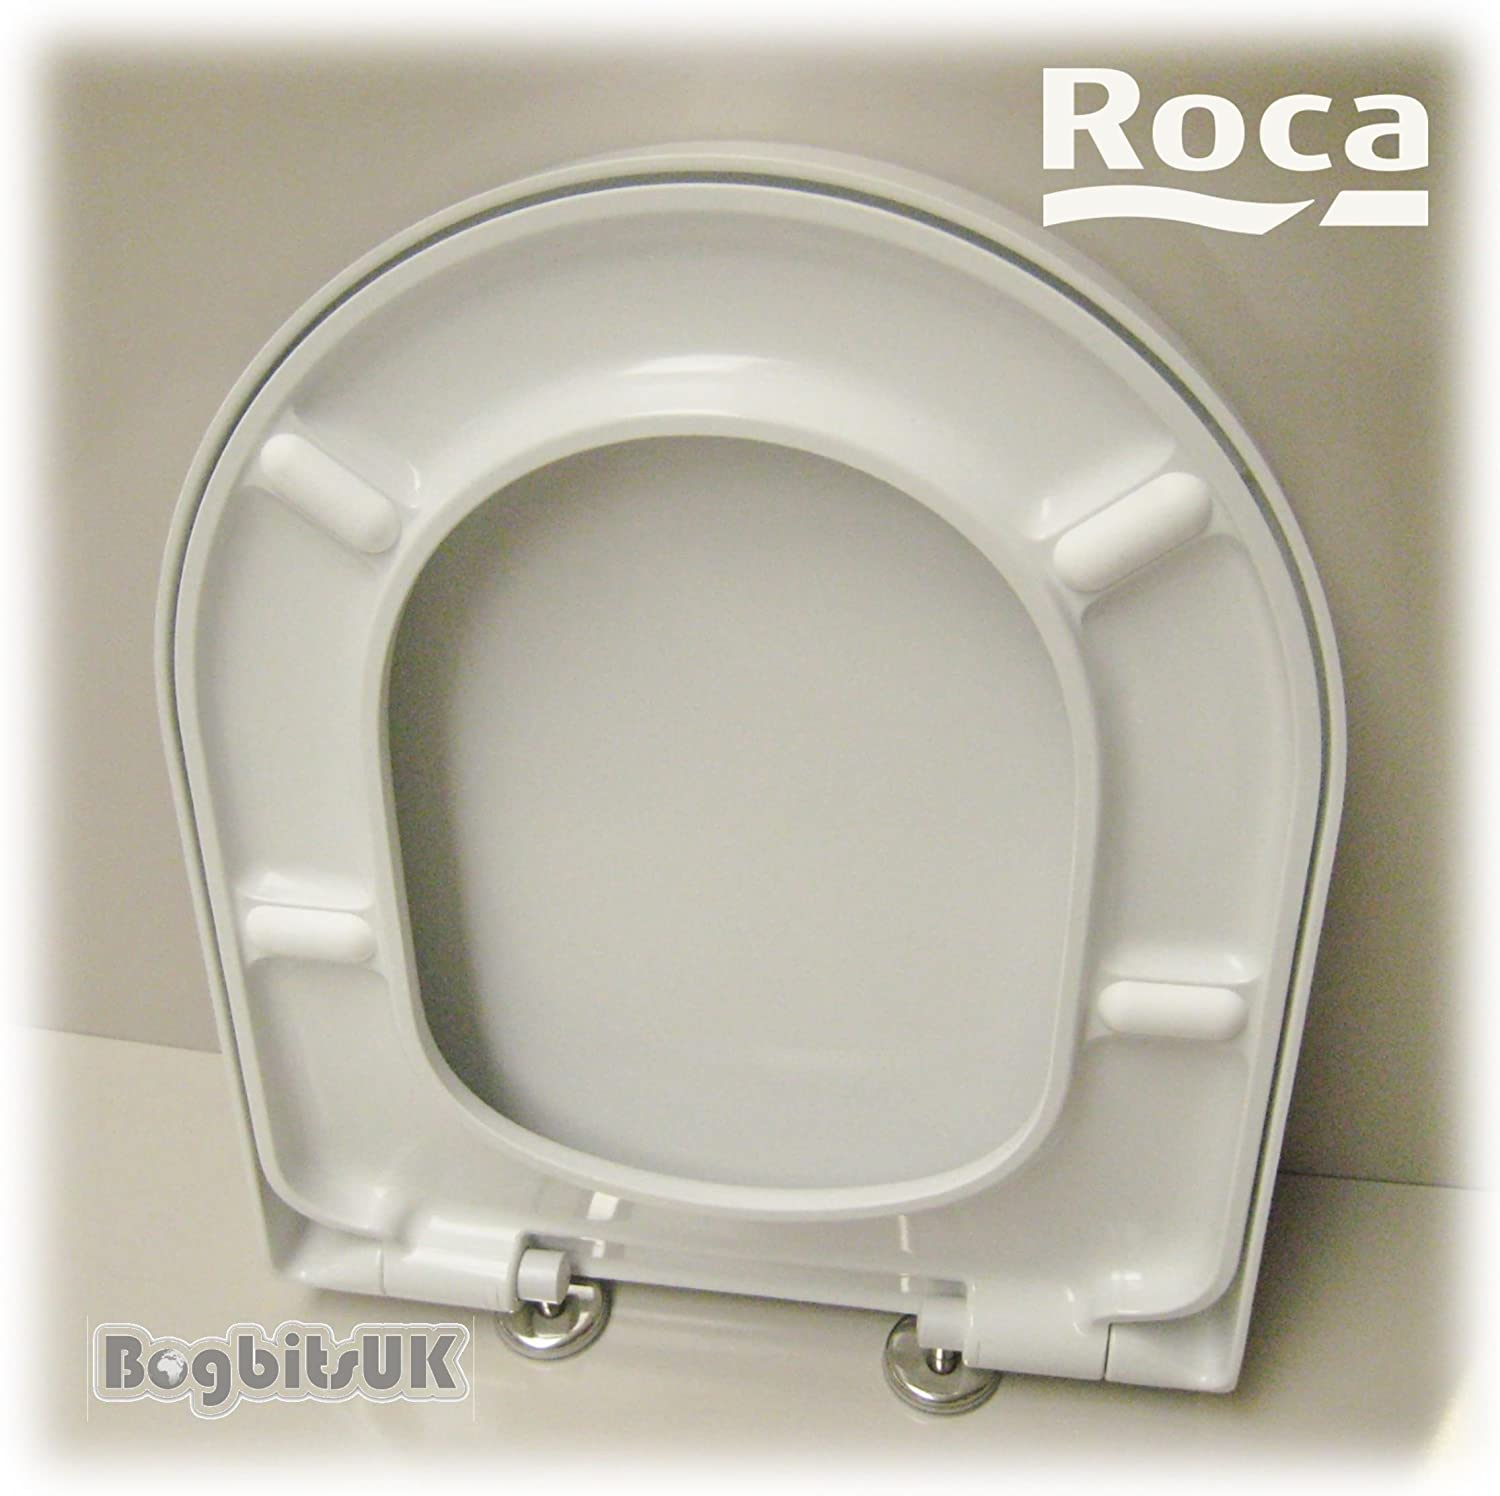 Amazing Roca New Style Nexo Replacement Wc Toilet Seat With Soft Closing Hinges 80164B004 Frankydiablos Diy Chair Ideas Frankydiabloscom